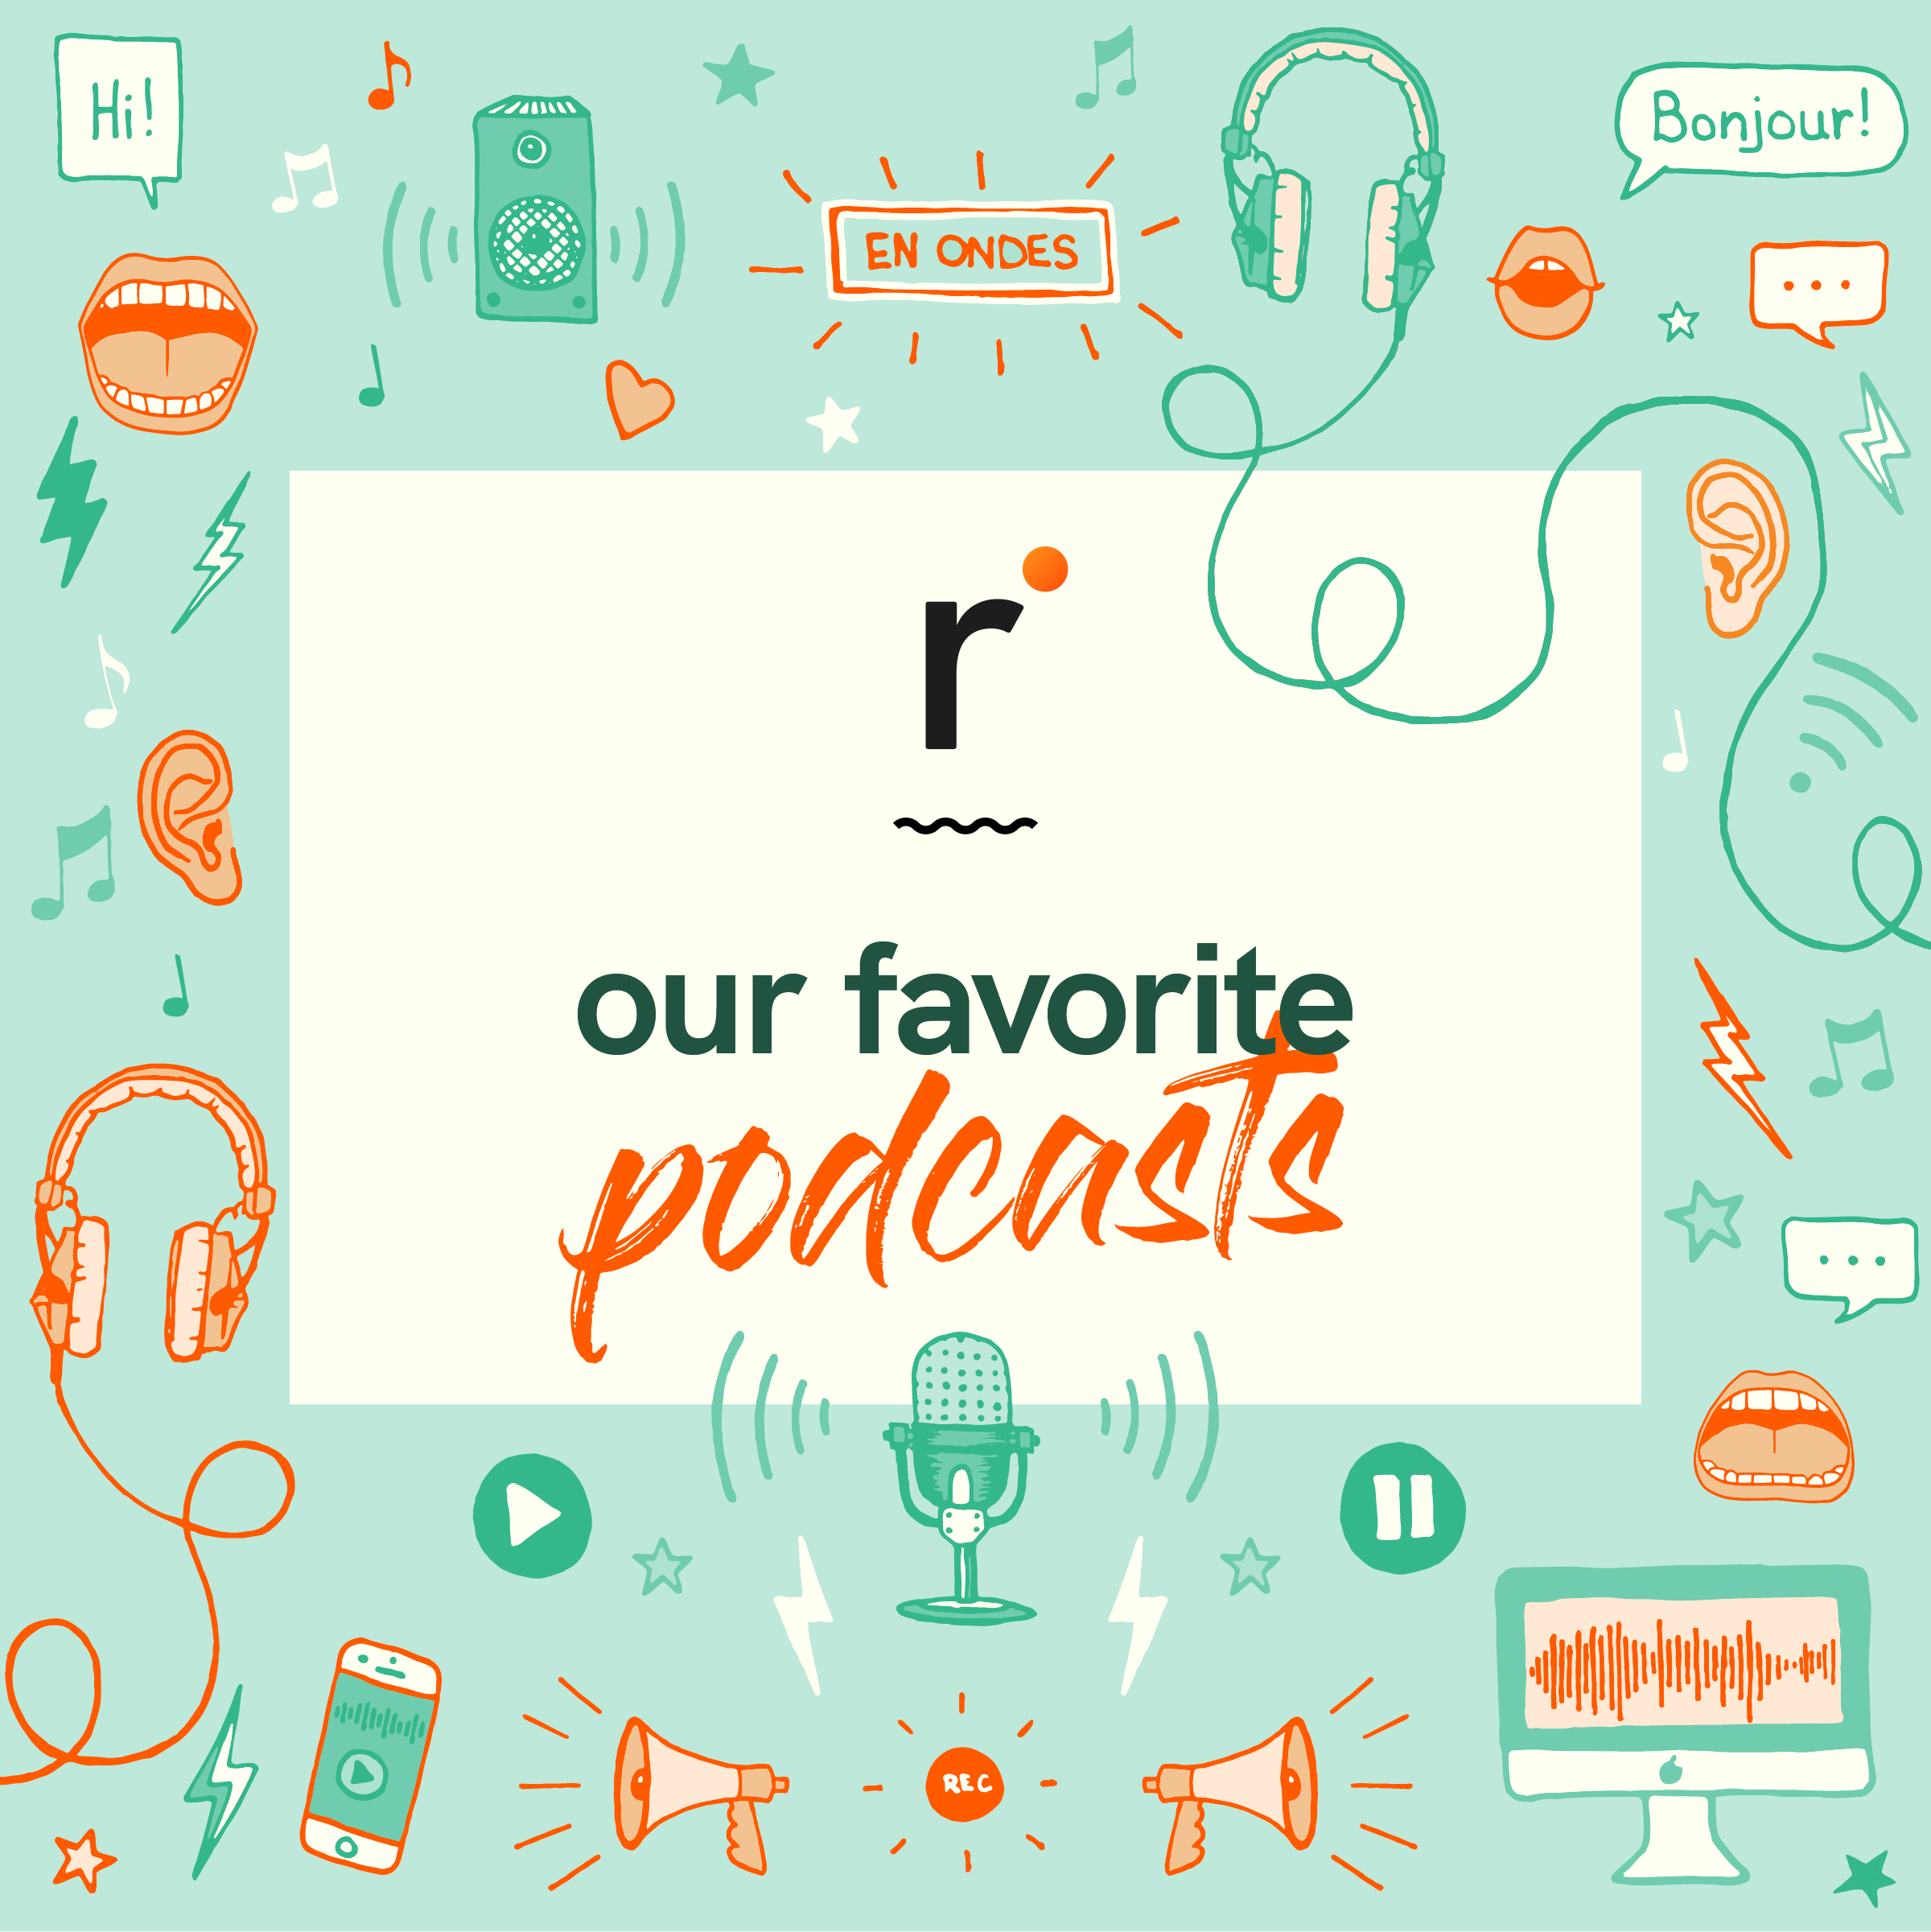 Our favorite podcasts